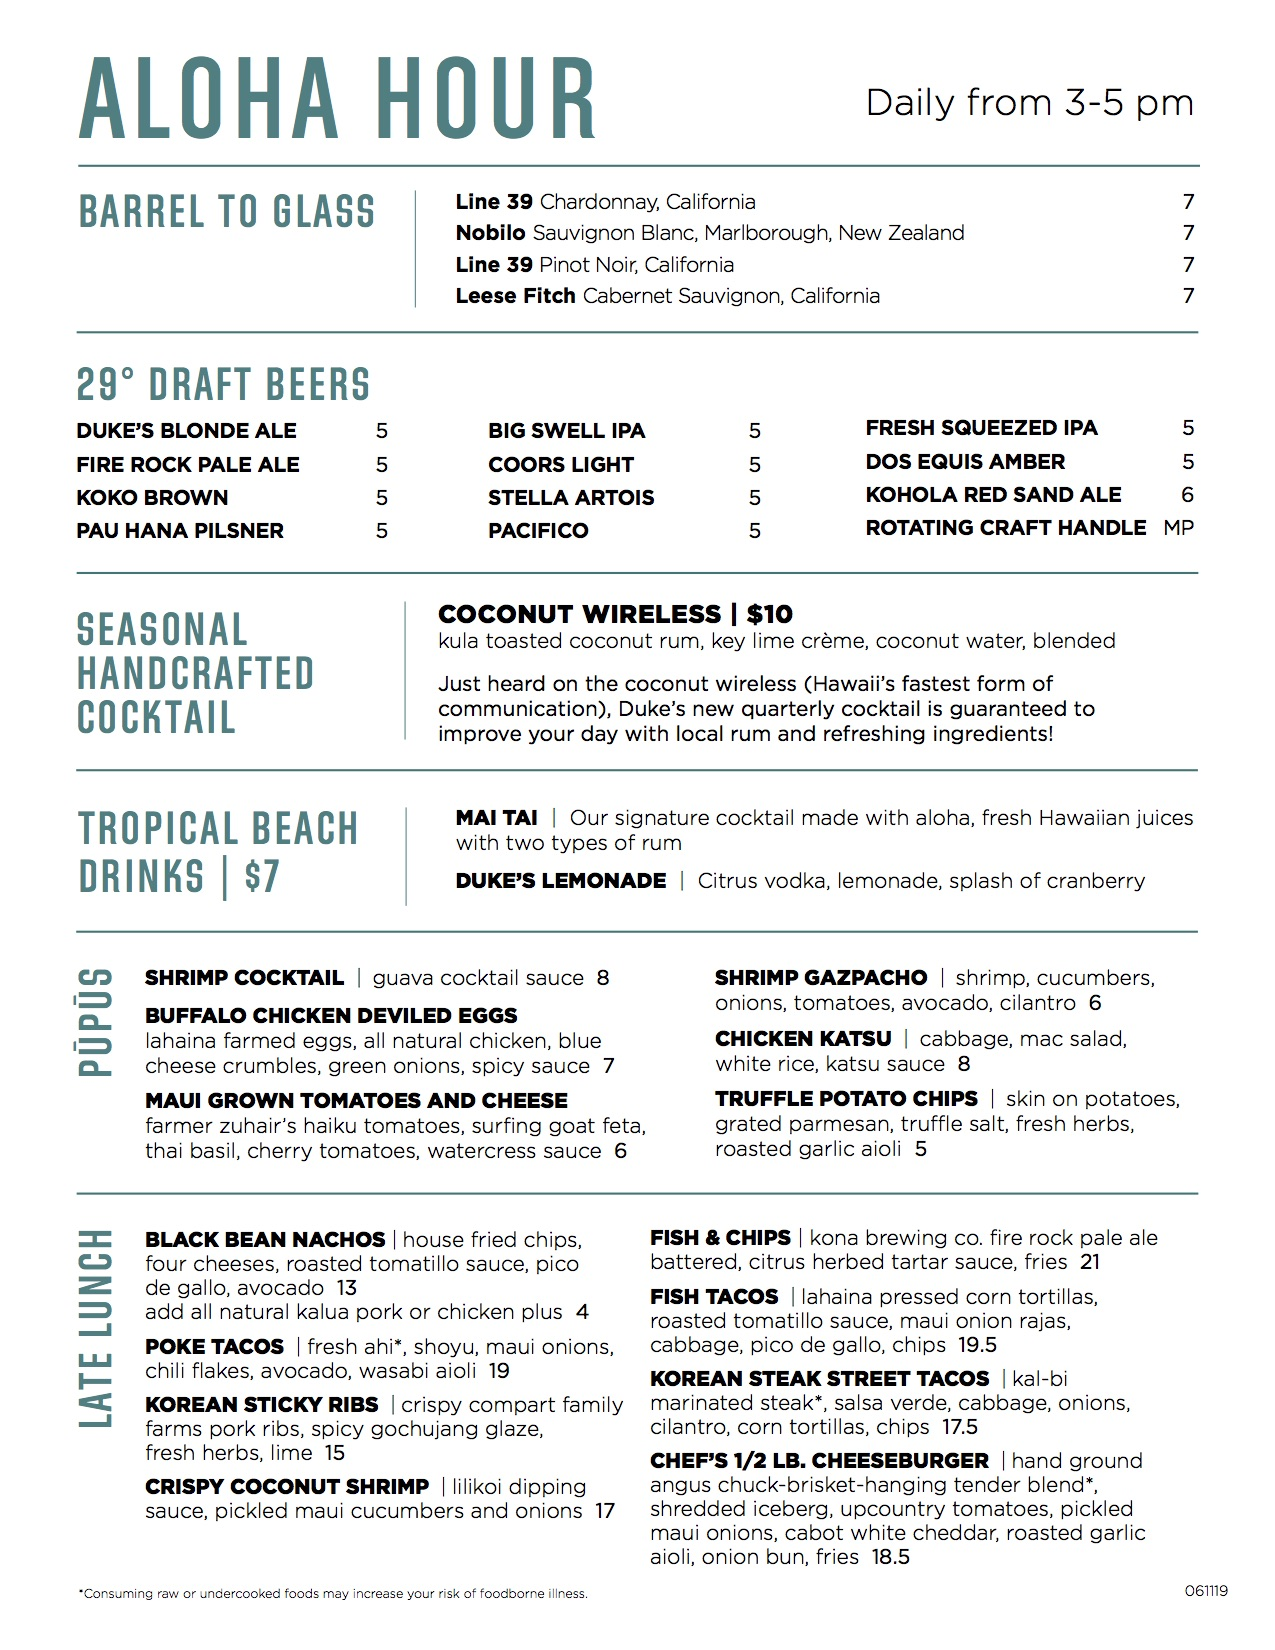 Aloha hour or happy hour menu